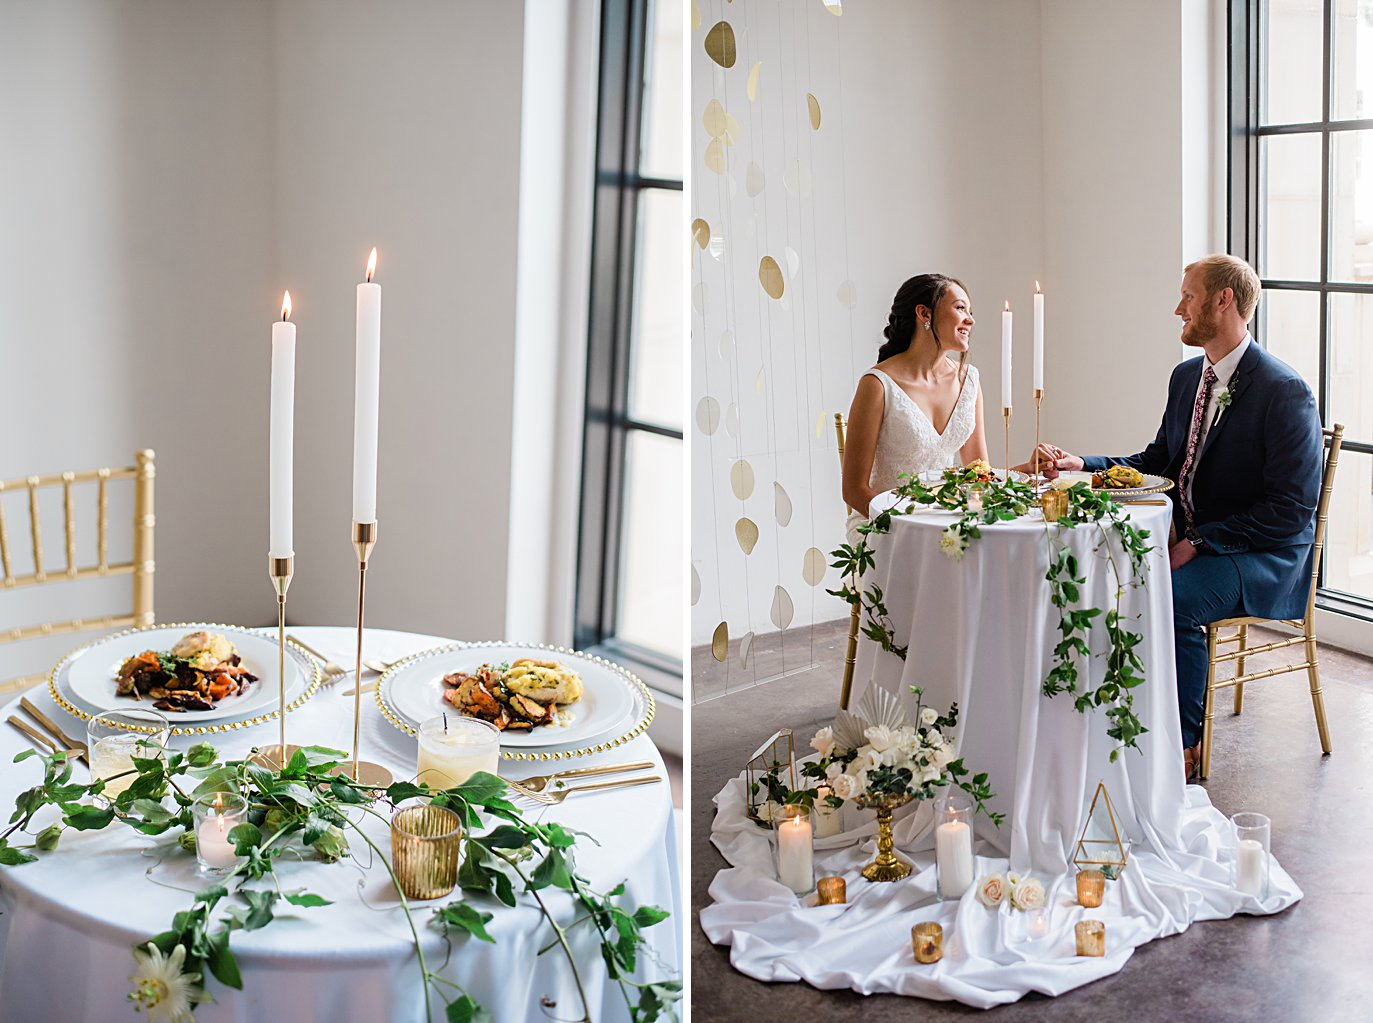 sweatheart table with copper accents and candles at Walker Fine Art Gallery Wedding by Boulder Wedding Photographer Jennie Crate